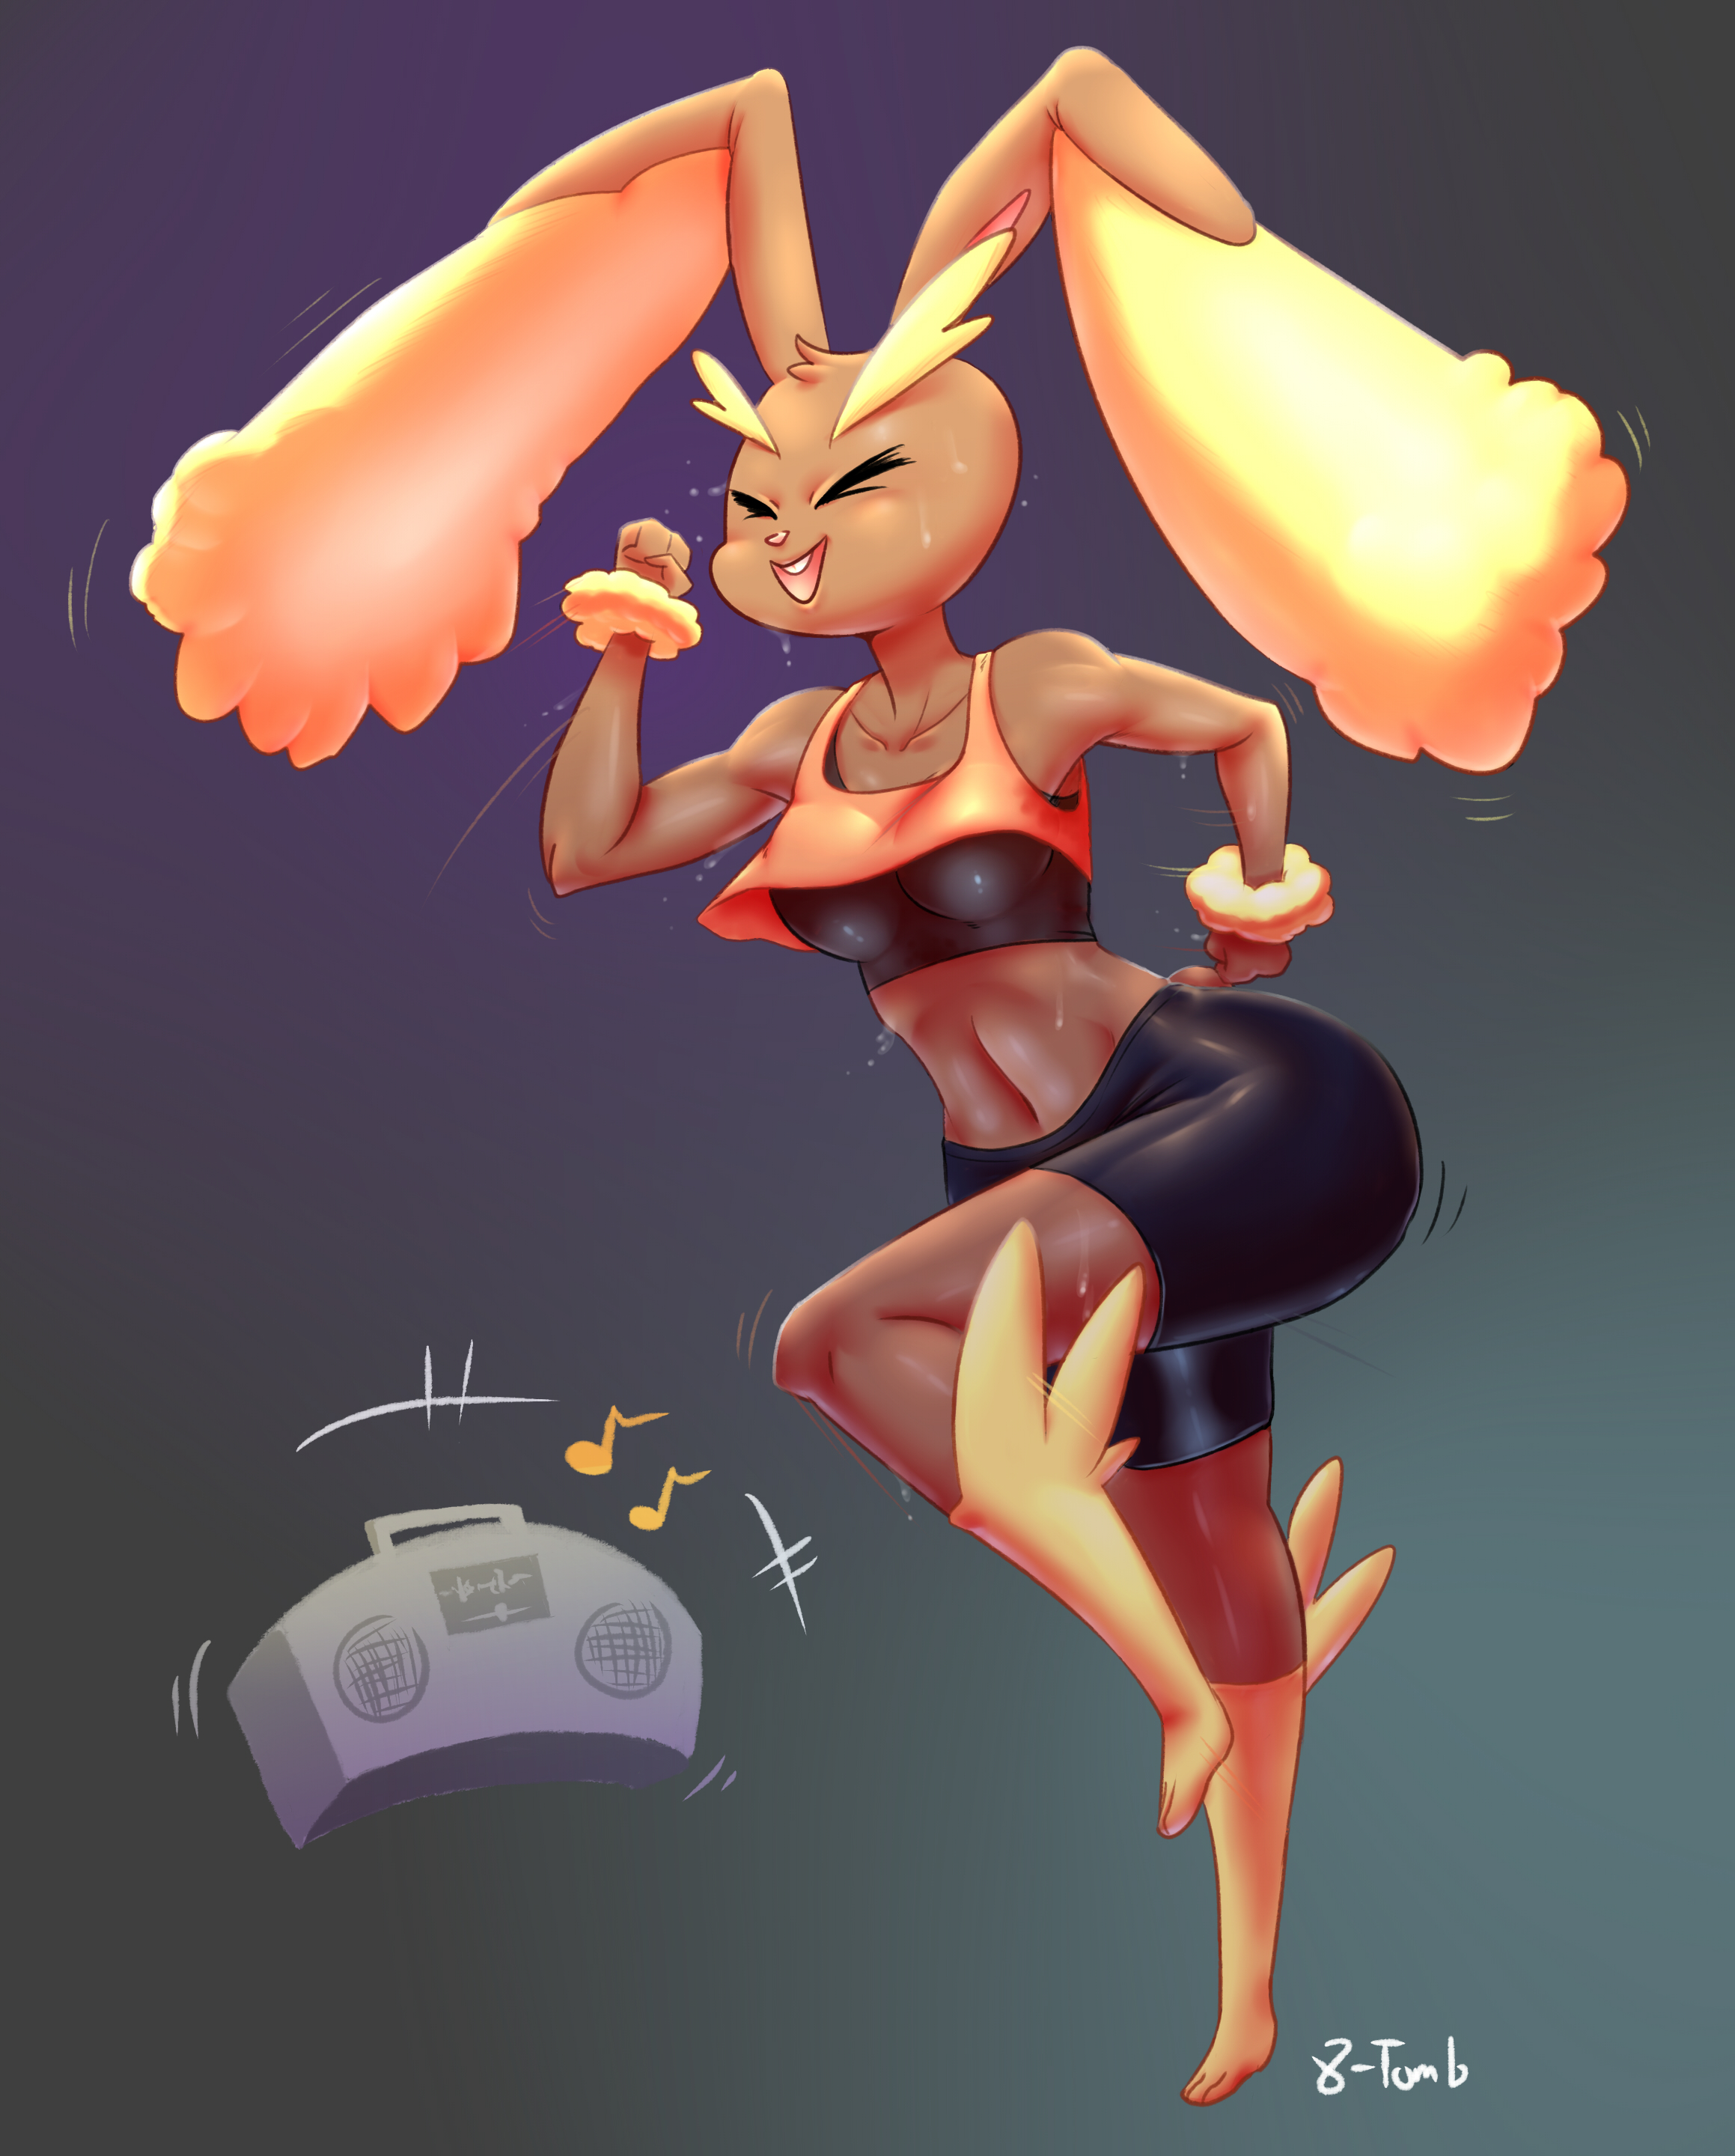 e926 2015 absurd_res anthro breasts brown_fur clothing exercise eyes_closed female fur hi_res lagomorph lopunny ltomb mammal midriff musical_note nintendo open_mouth open_smile pokémon pokémon_(species) pokémorph pseudo_clothing radio smile solo sweat video_games